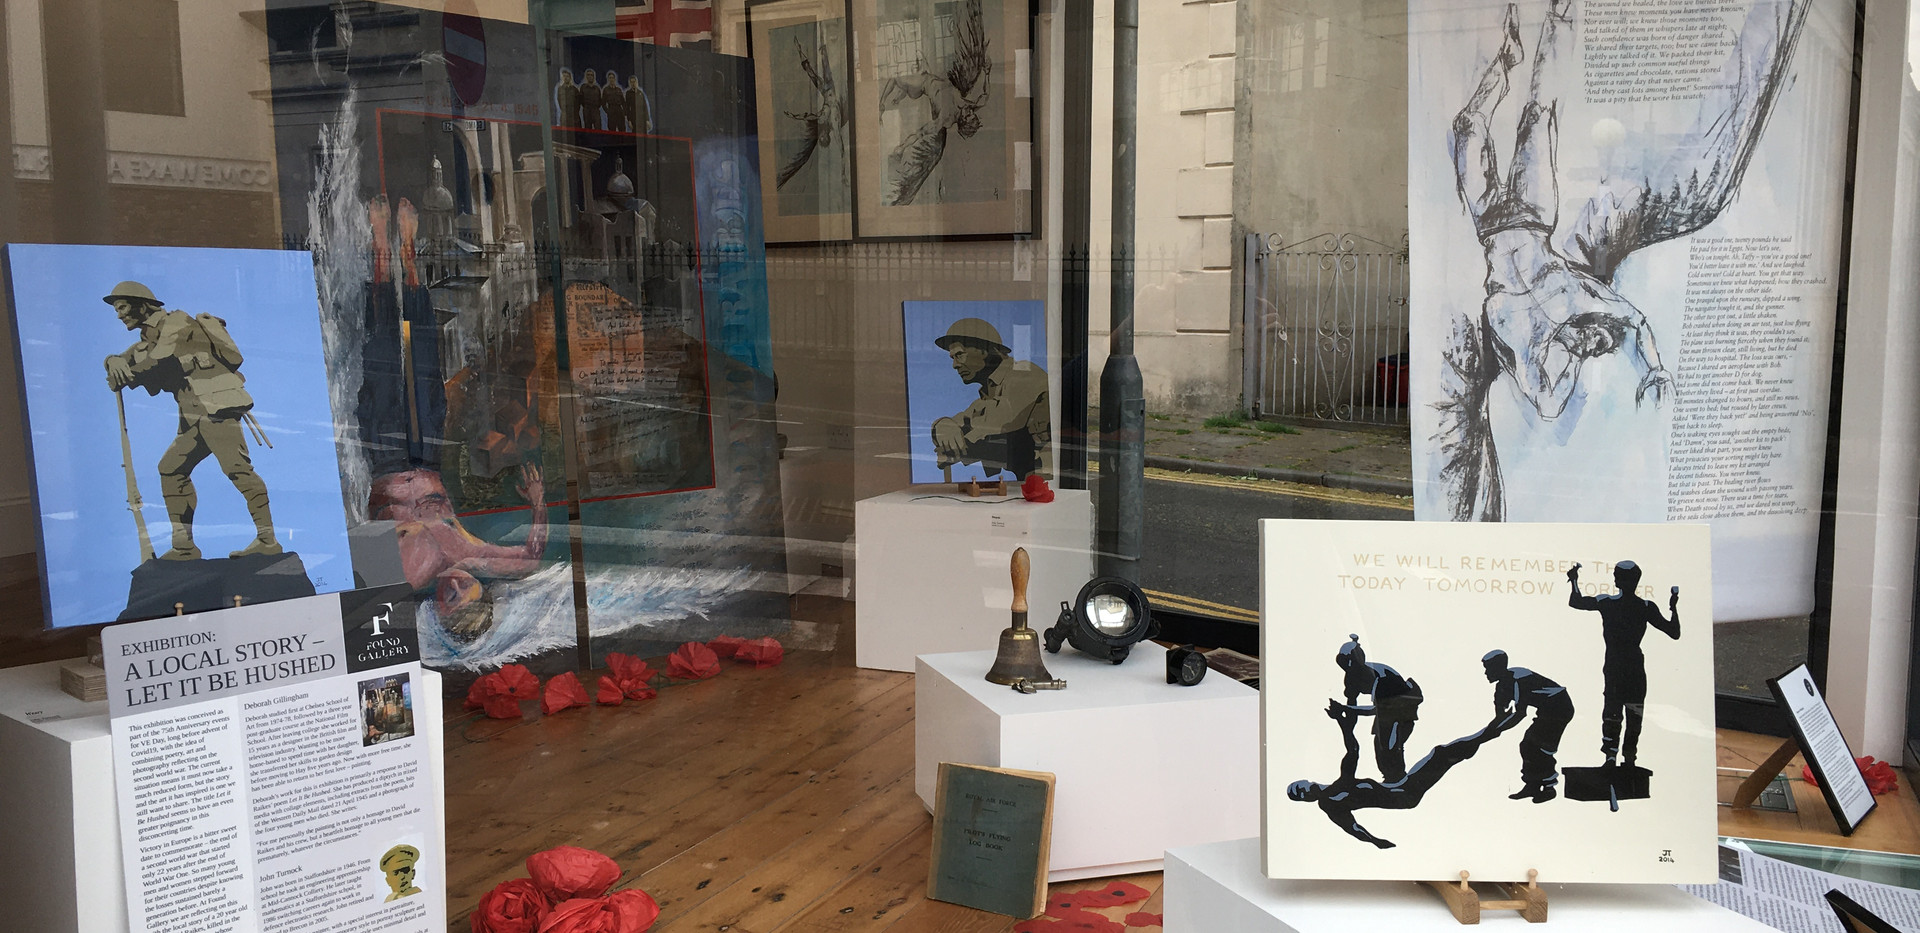 Window display of the Local Story - Let it be Hushed exhibition